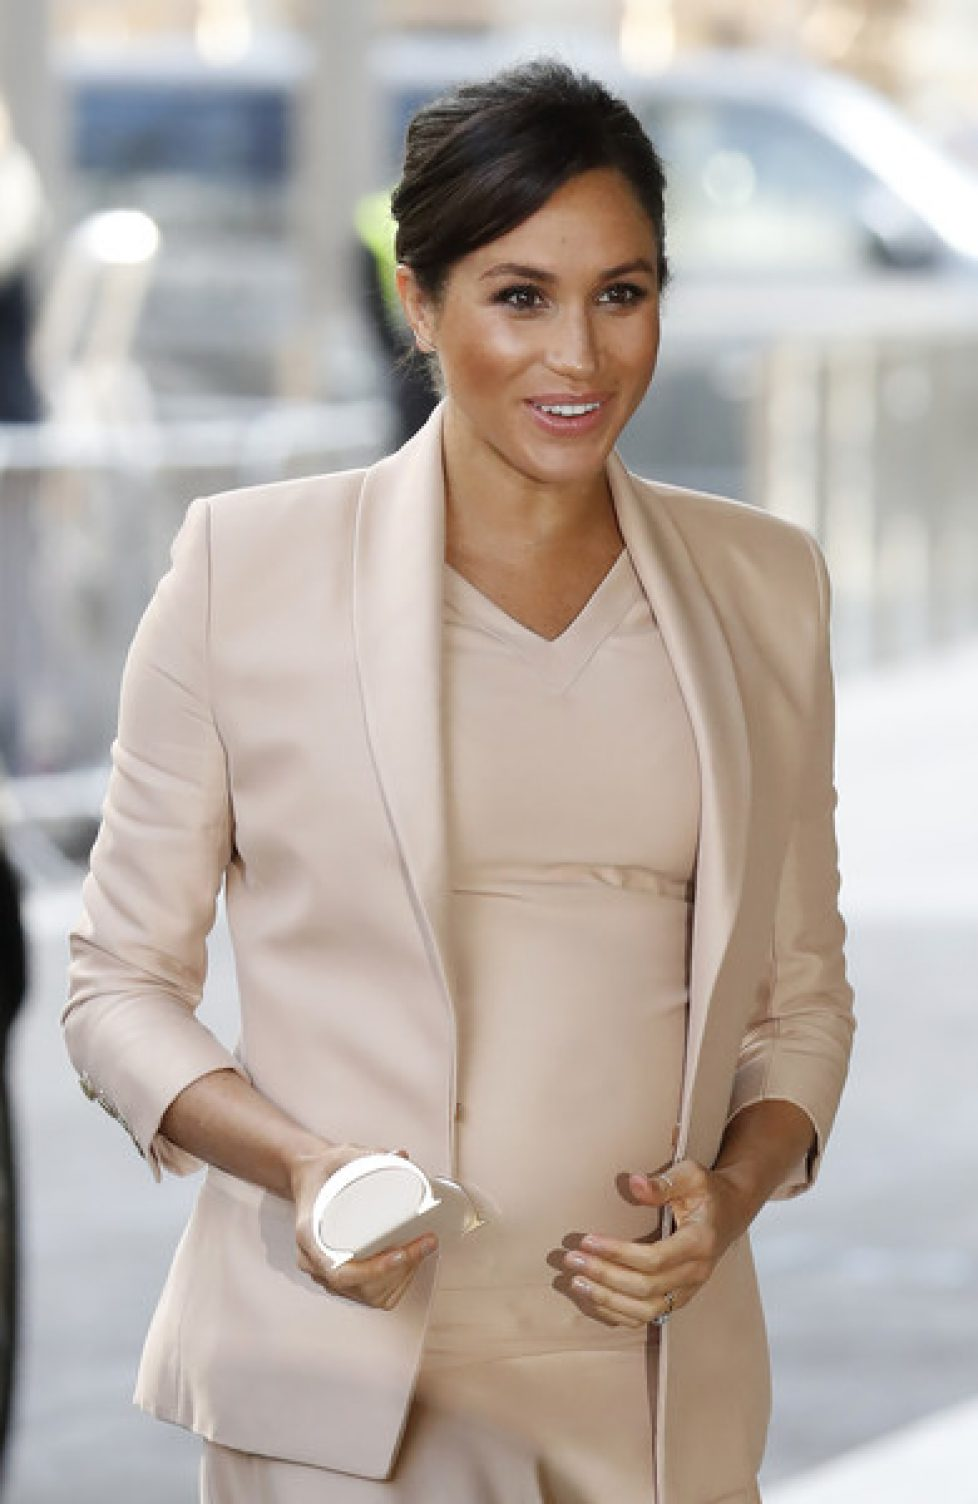 Duchess+Sussex+Visits+National+Theatre+mZp9jf8fKbil